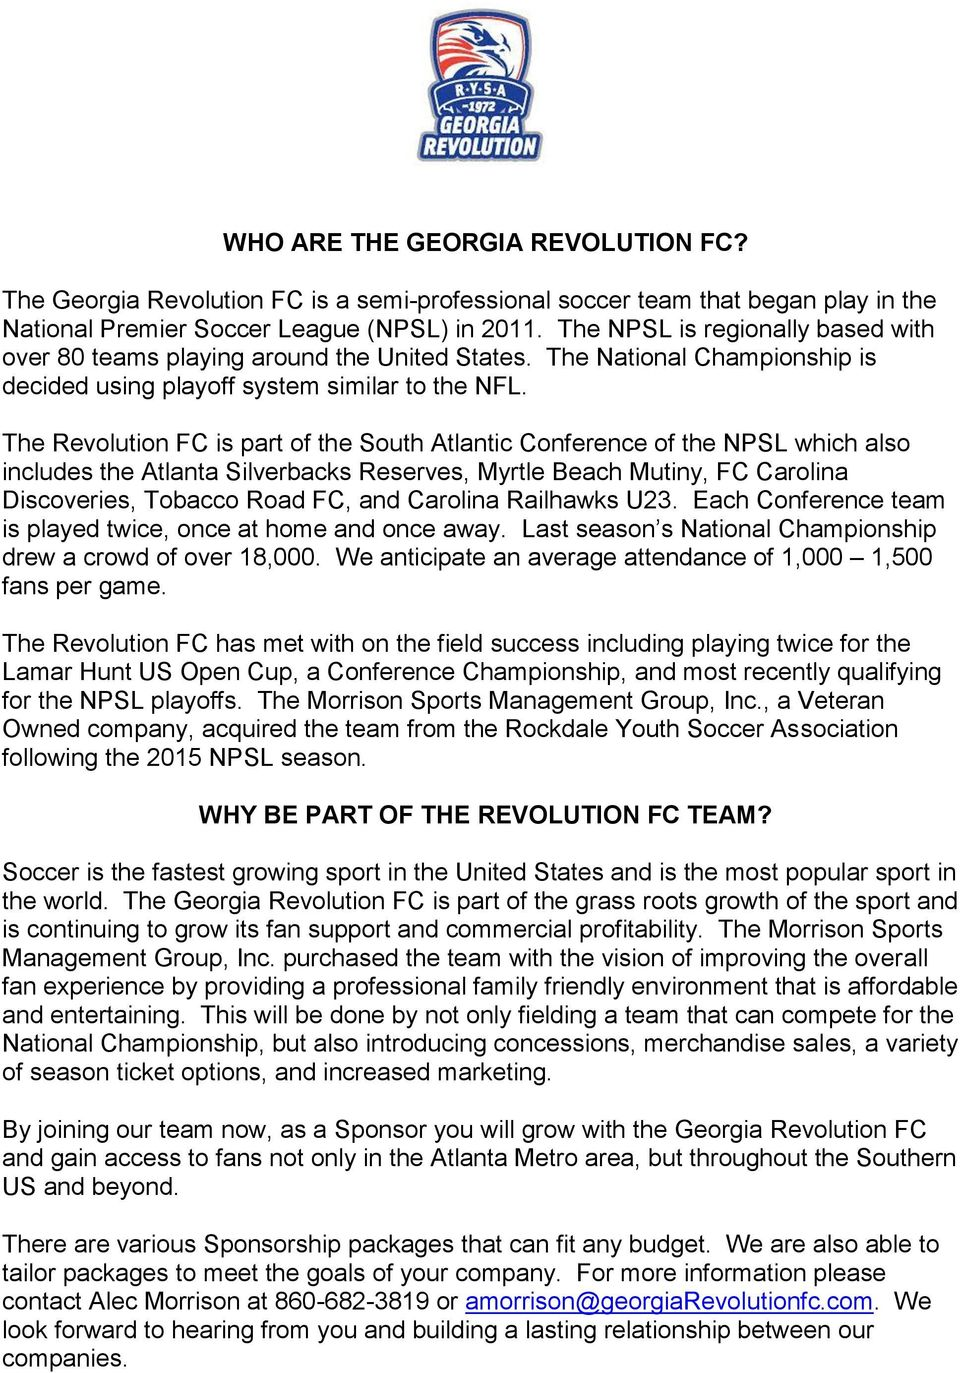 The Revolution FC is part of the South Atlantic Conference of the NPSL which also includes the Atlanta Silverbacks Reserves, Myrtle Beach Mutiny, FC Carolina Discoveries, Tobacco Road FC, and